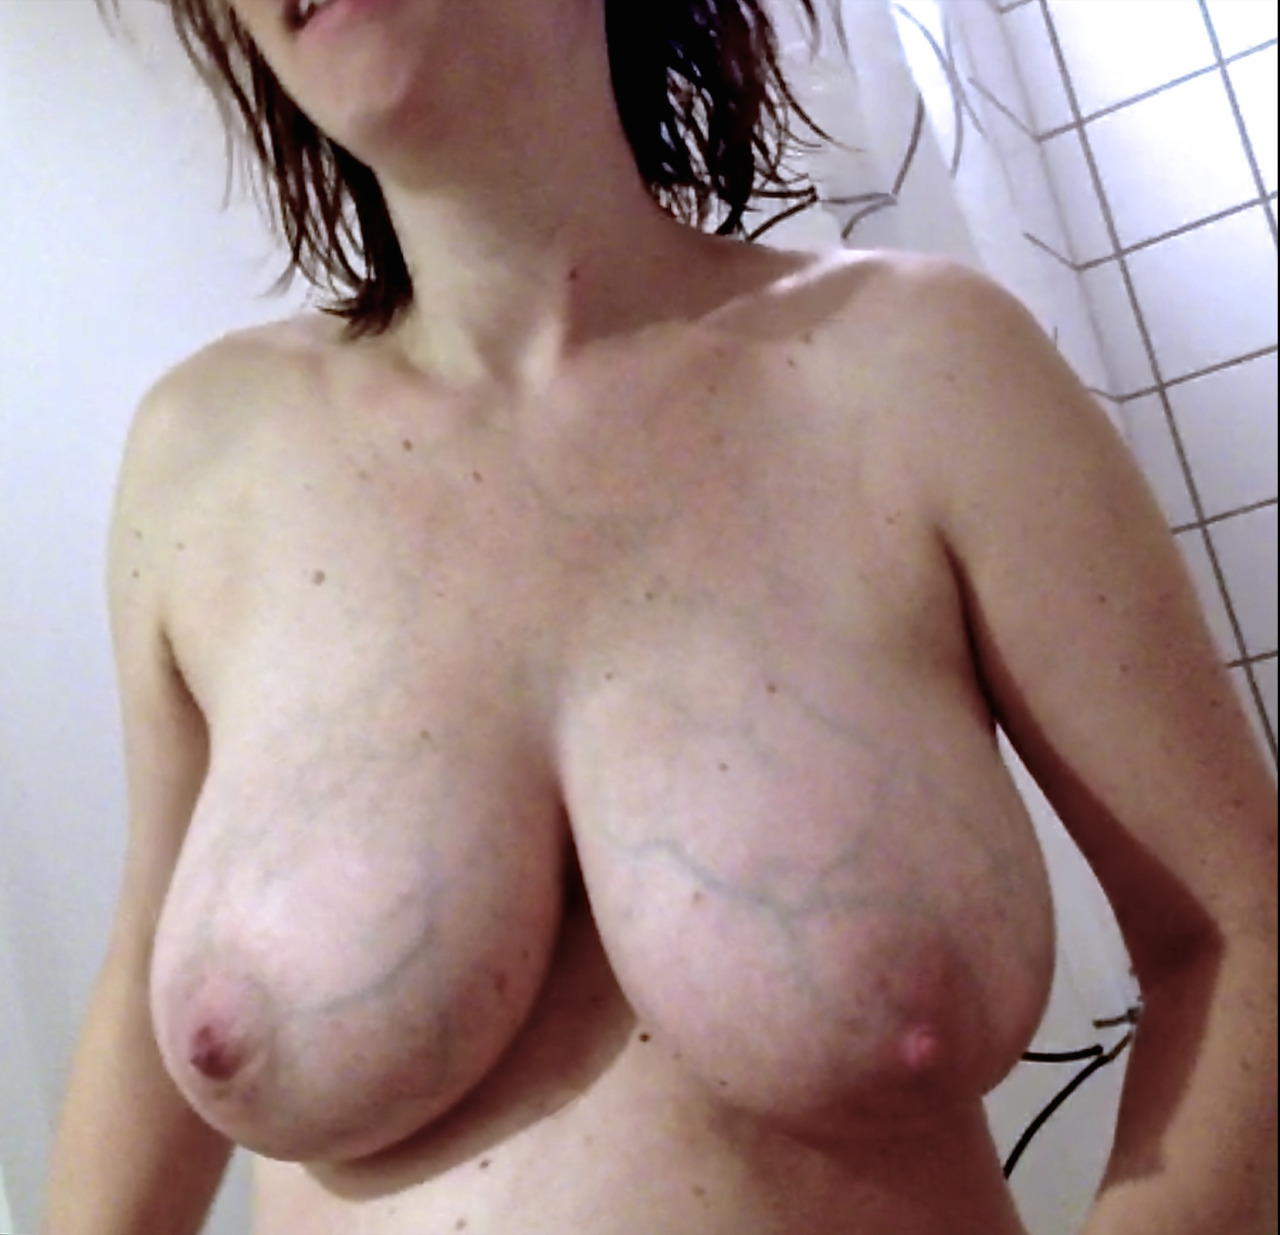 Other variant Big tits with veins what